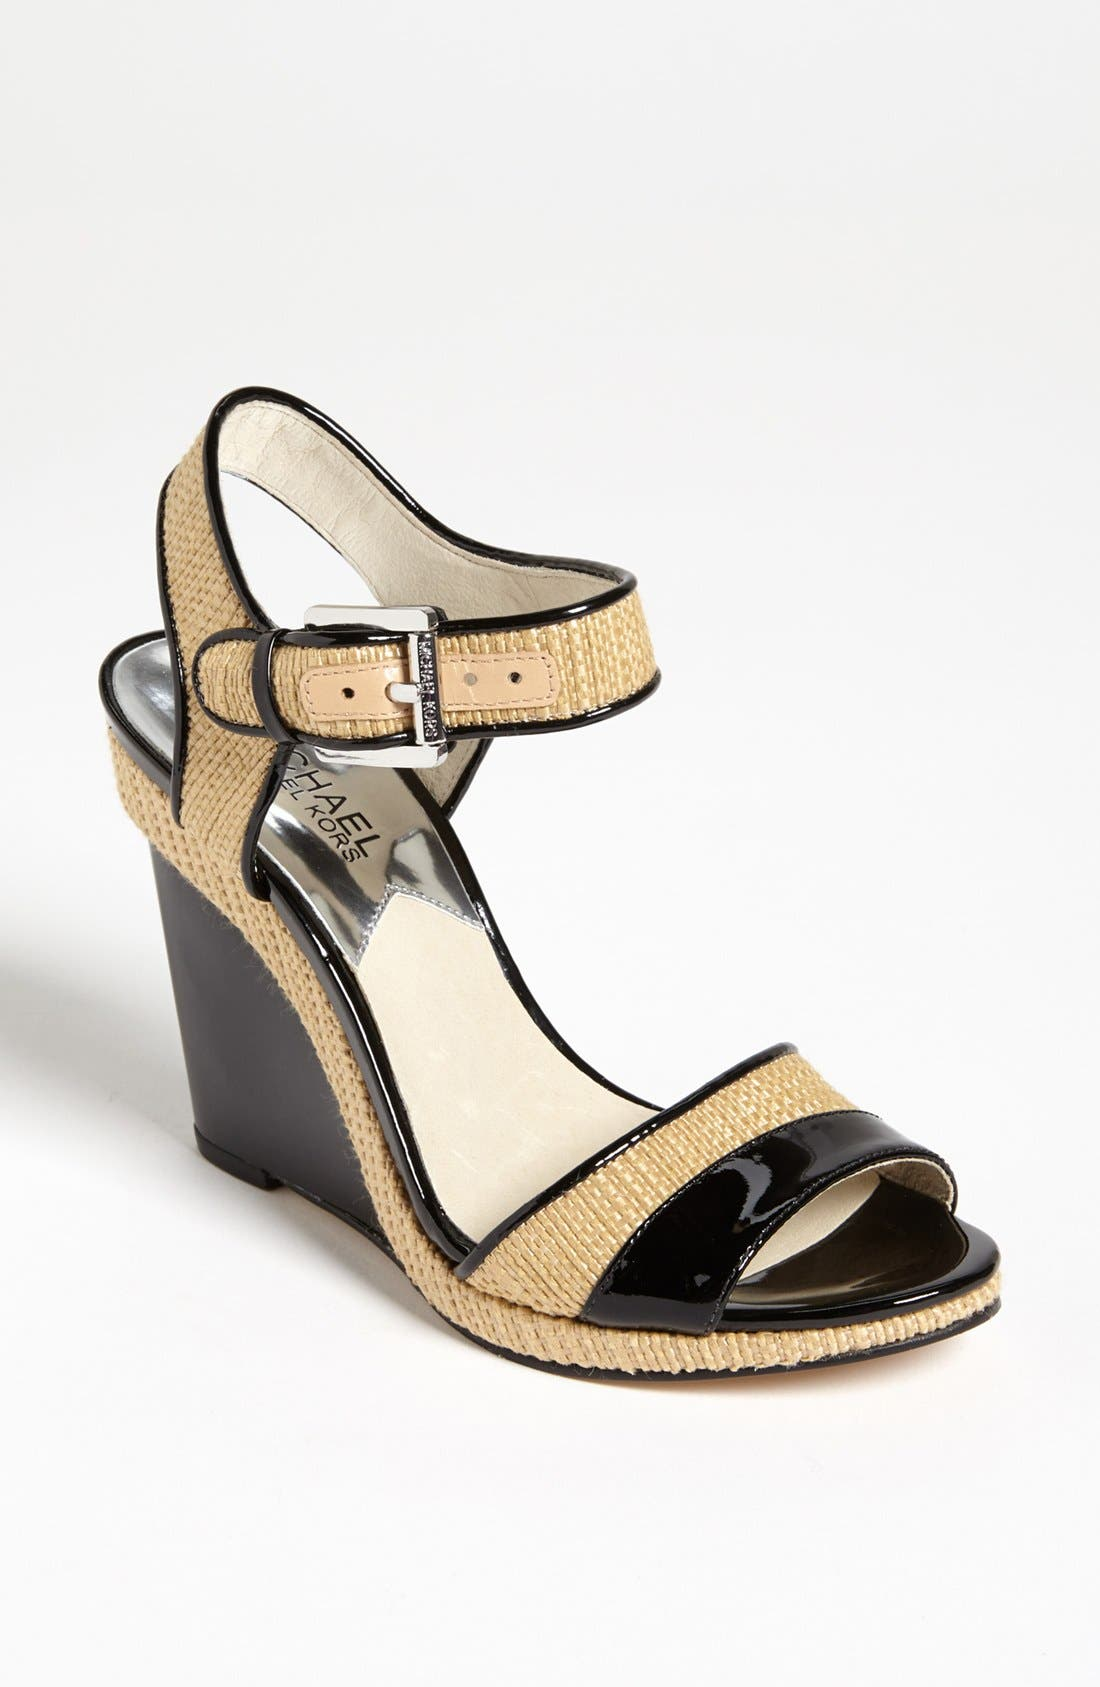 Alternate Image 1 Selected - MICHAEL Michael Kors 'Camilla' Sandal